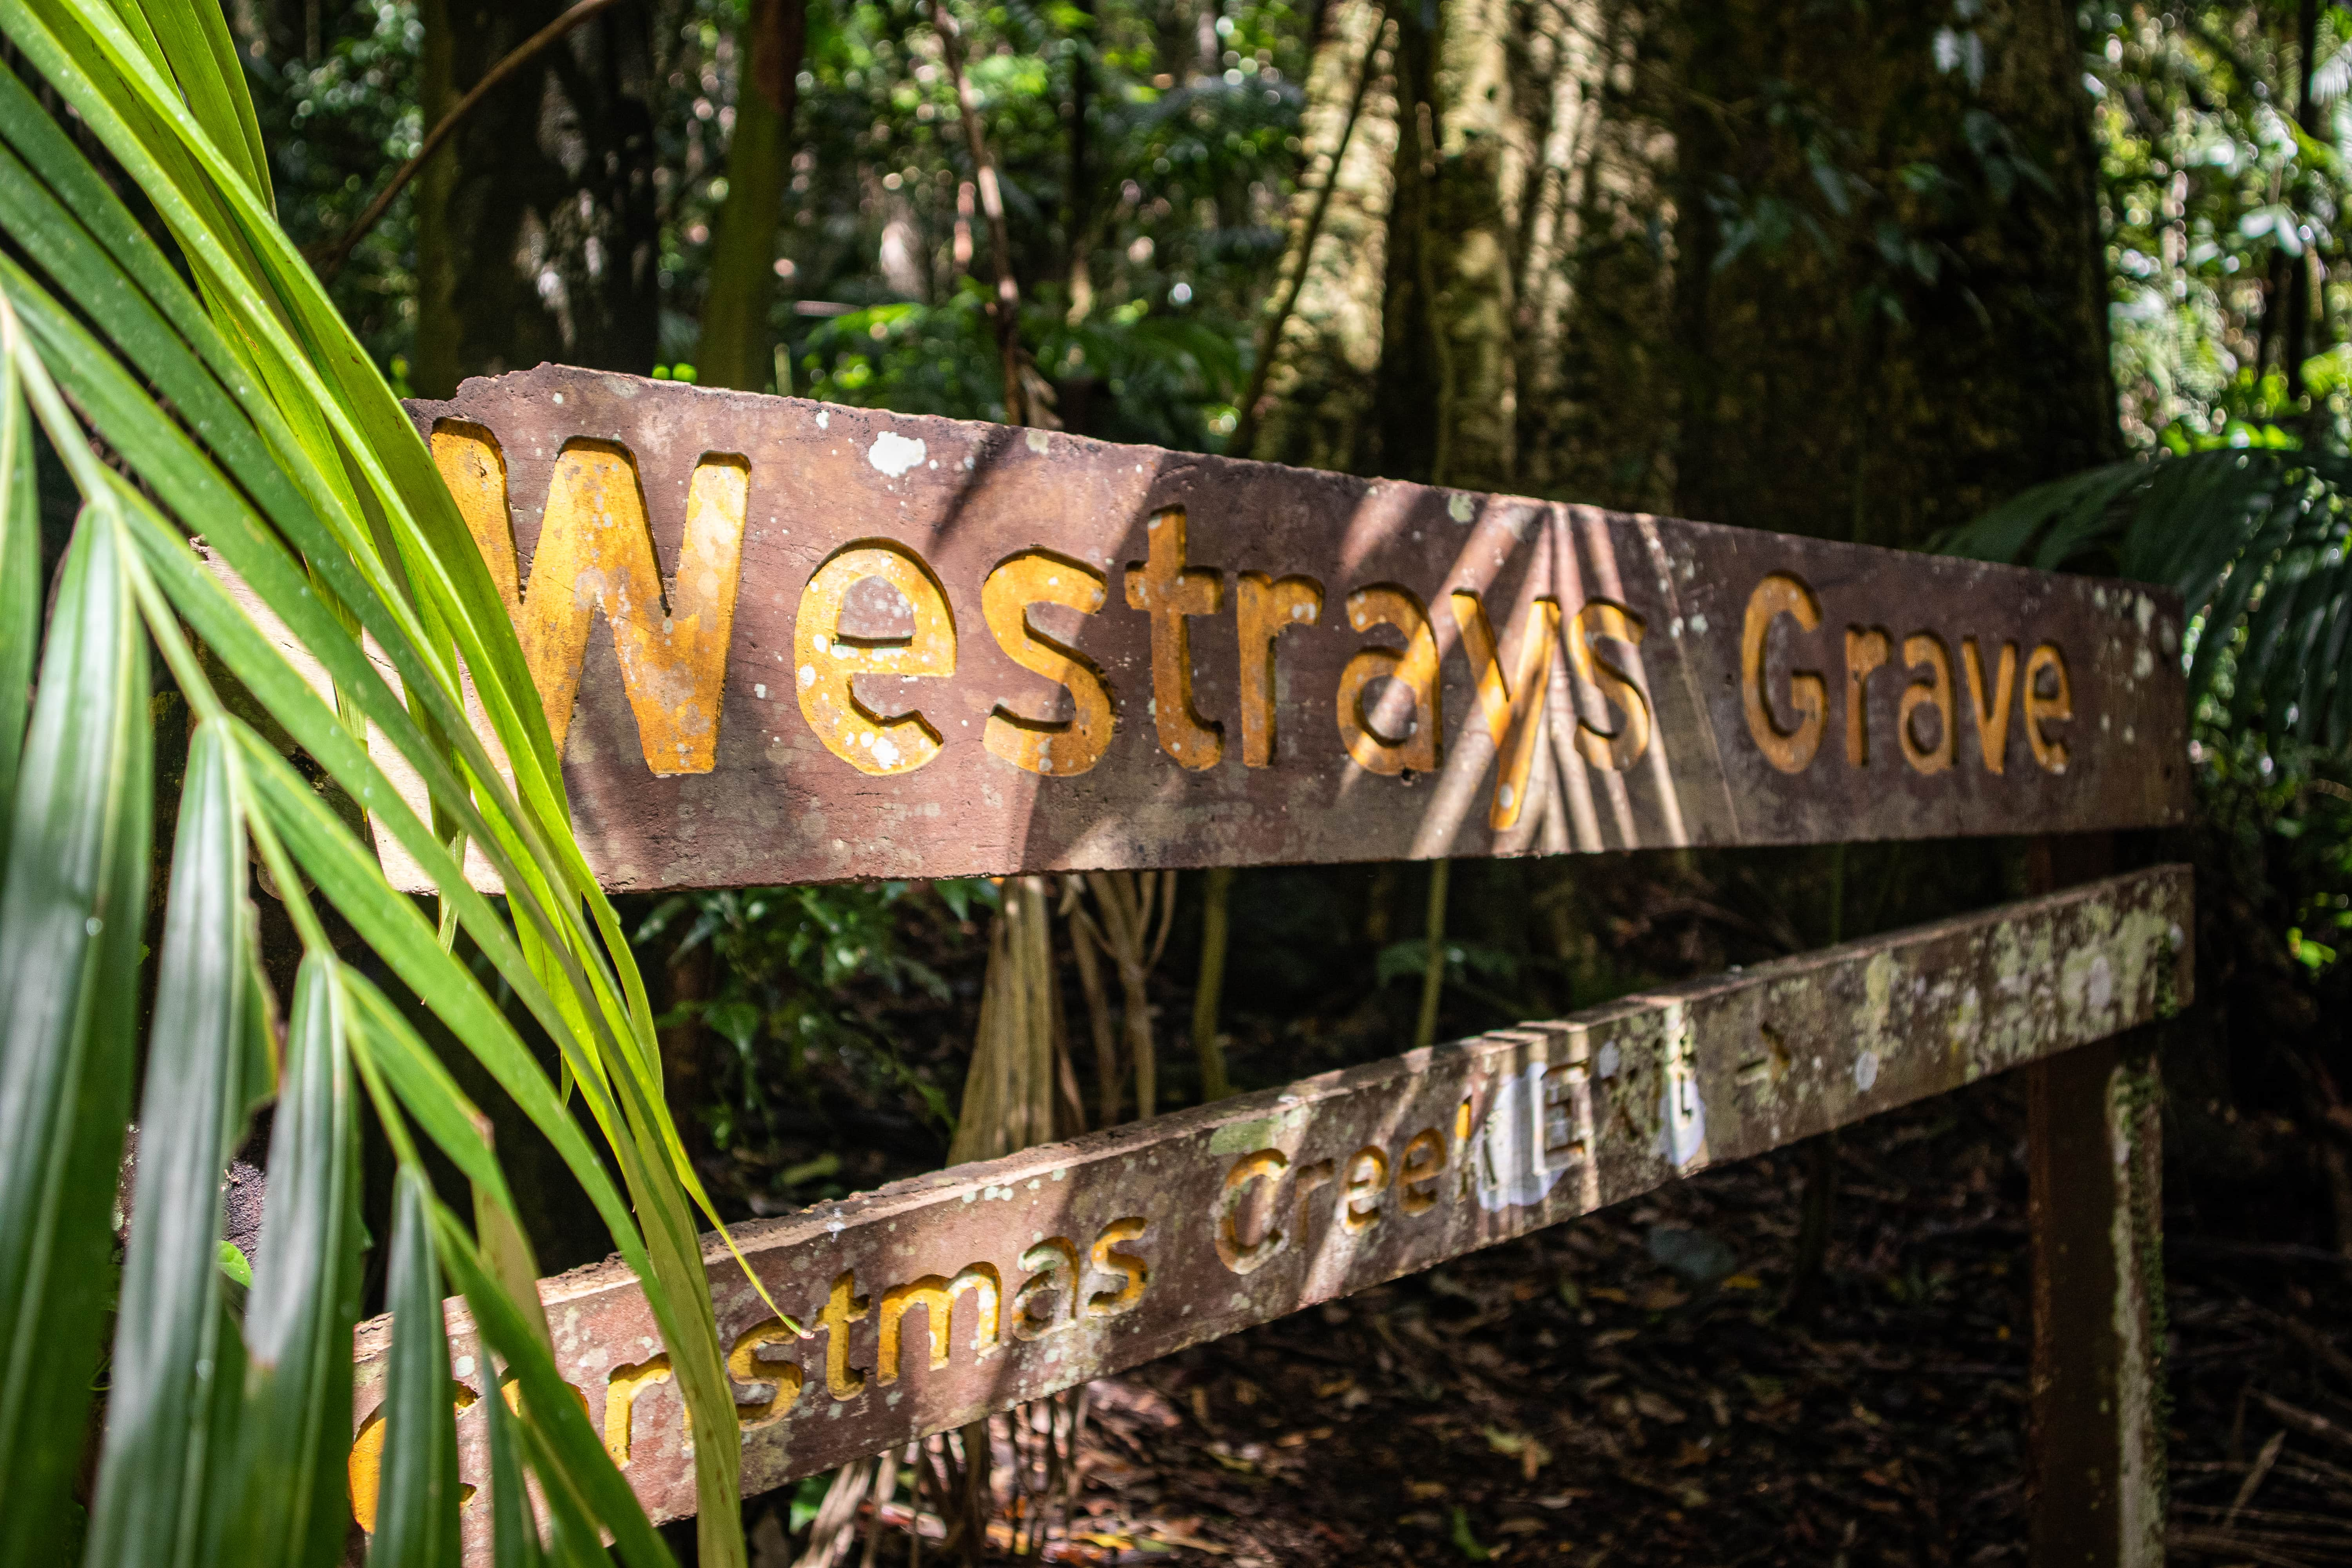 A wooden sign in Lamington National Park, Gold Coast, Australia indicating Westray's Grave